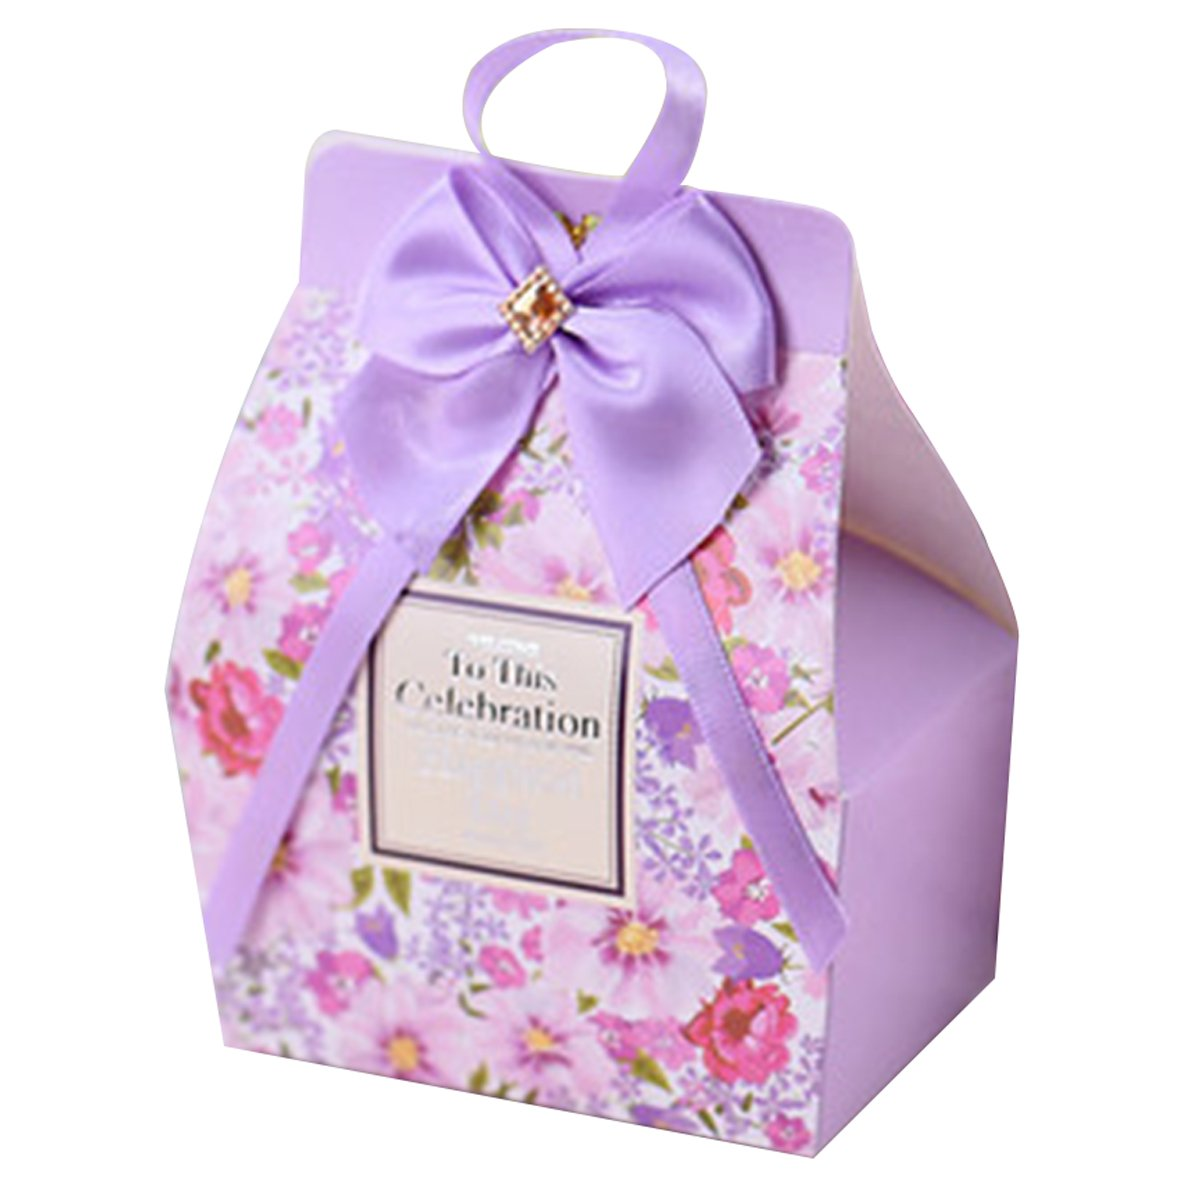 autulet Small Wedding Gift Boxes Present Box Baptism Favors Boy Baby Shower Decorations 20 Pieces (Candies or chocolates not included)